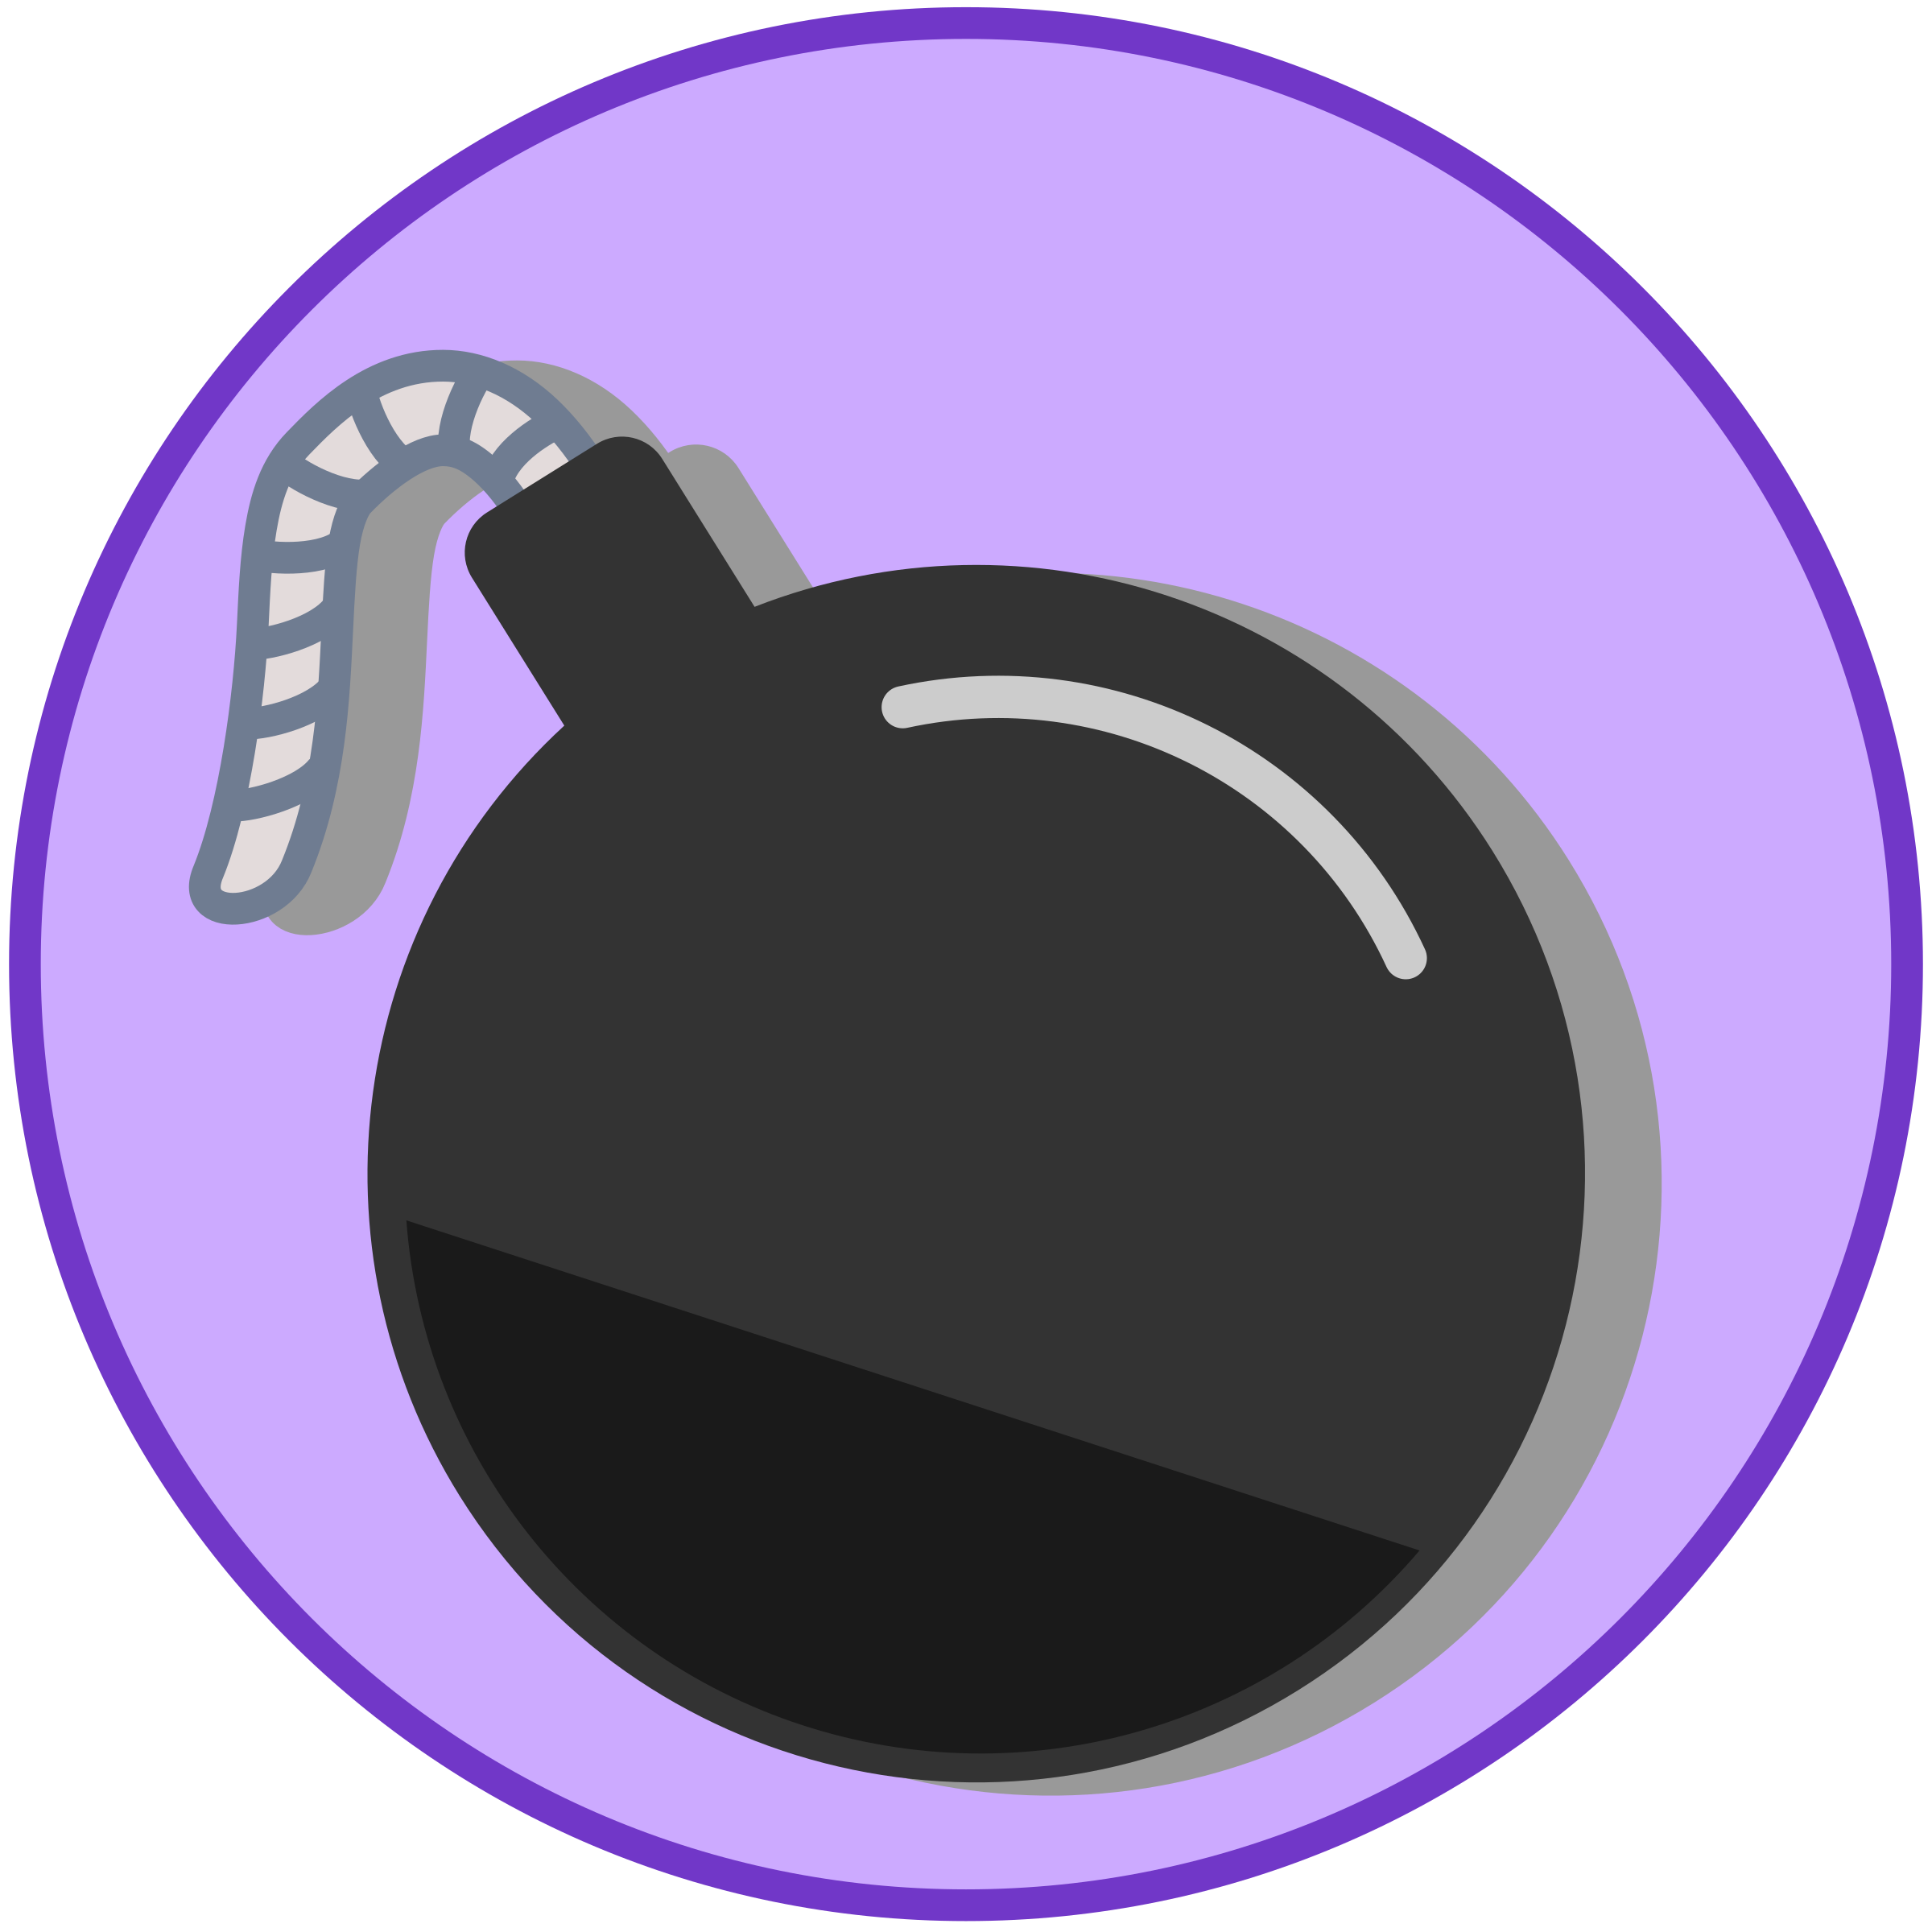 Bomb icon (Flat) by argumento